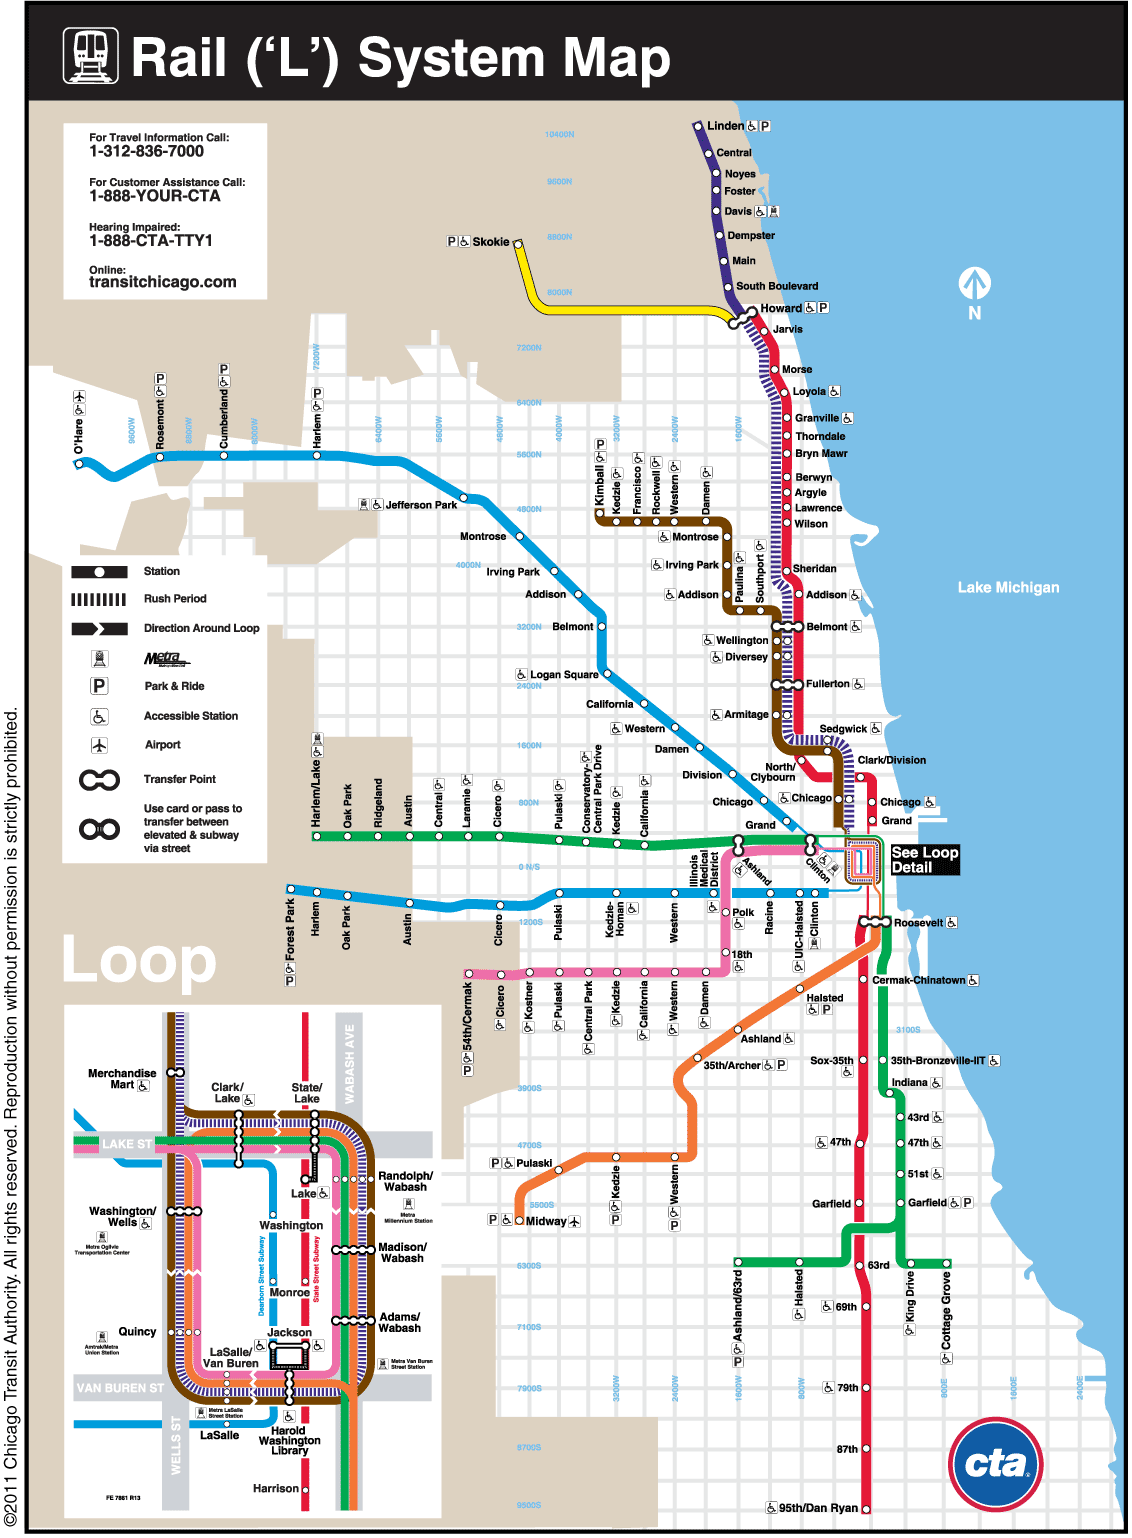 Chicago Blue Line Map Train Mapsofnet Chicago Transportation - Chicago map download